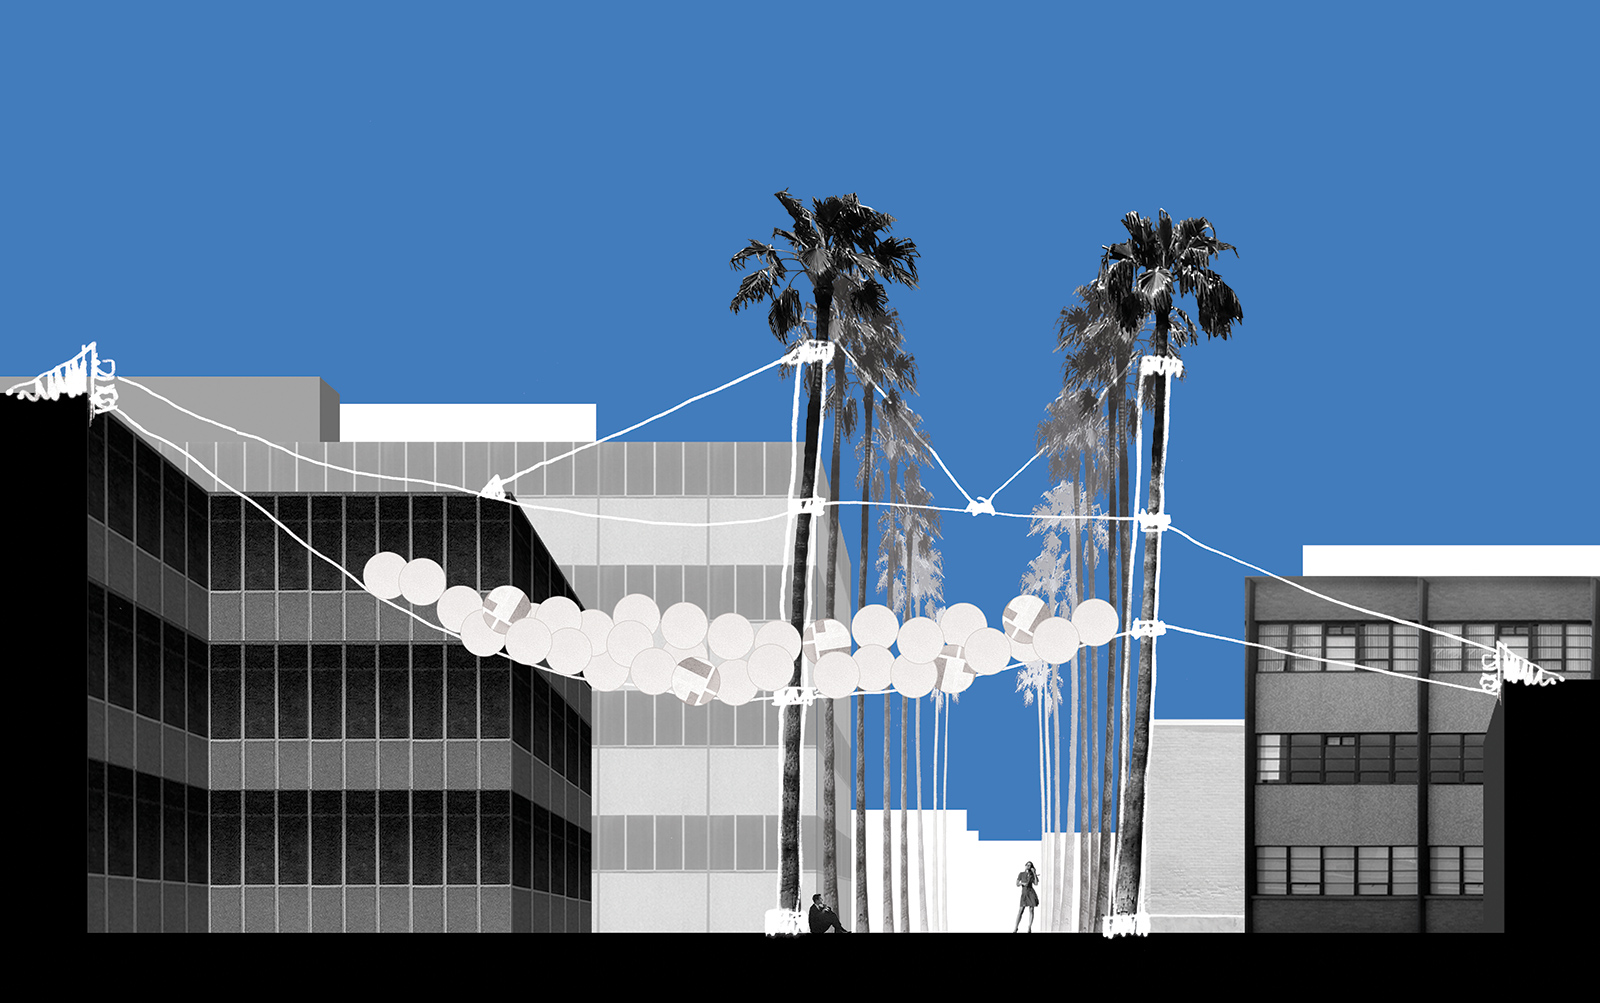 Section drawing showing the scale and relationship of the PEP canopy with the palms and university buildings along Palm Walk